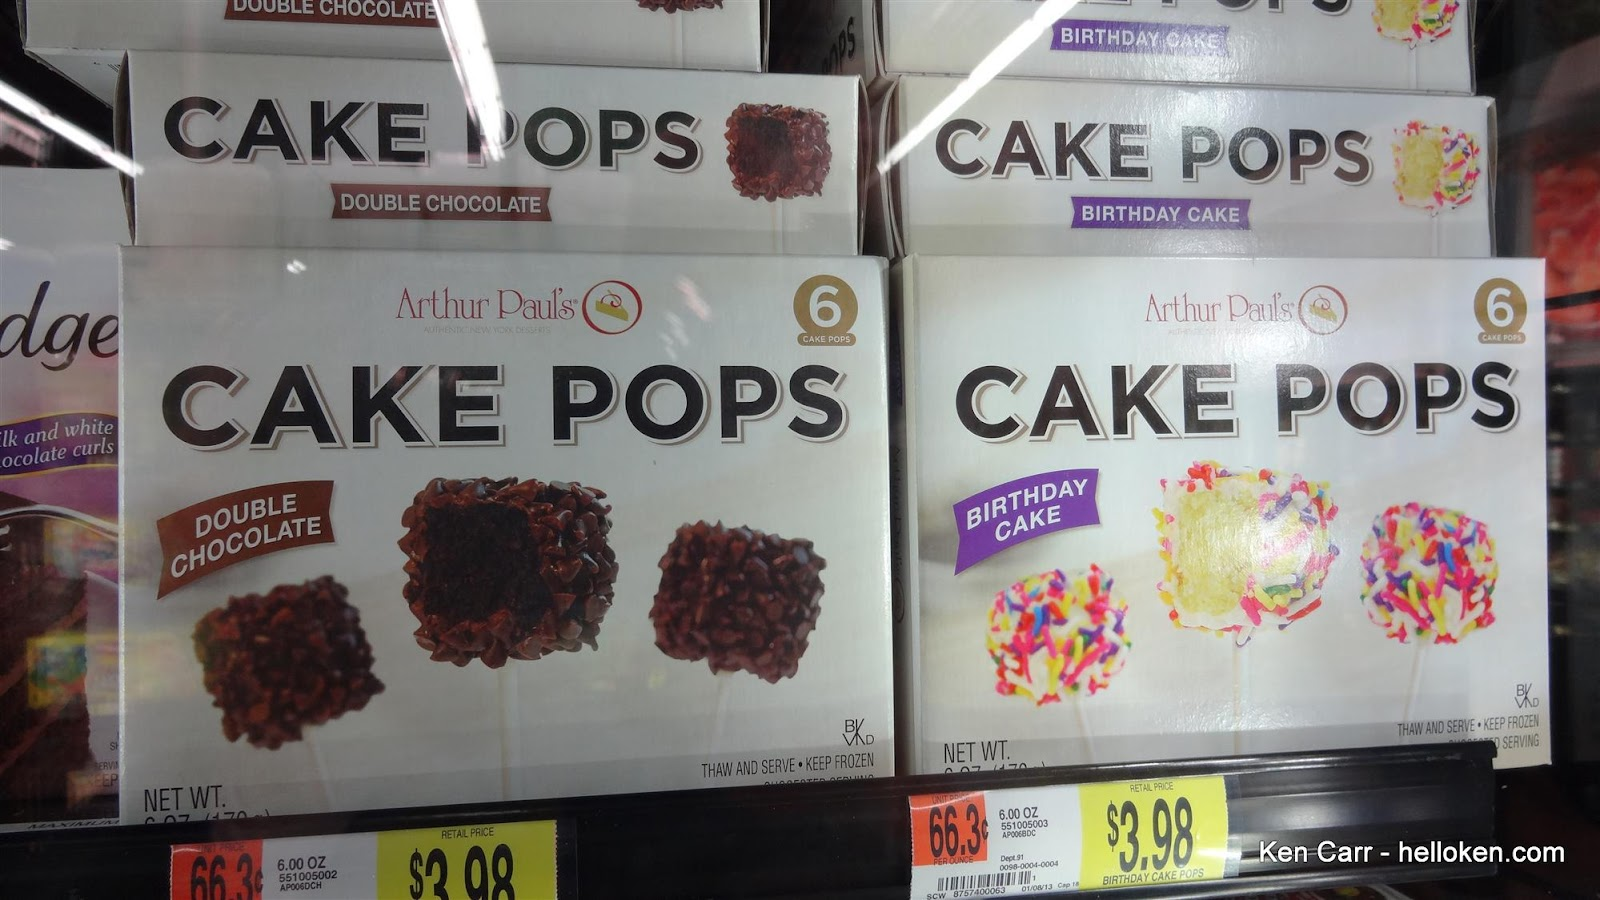 Cake Pops Are A Trendy Thing These Days Made By Balling Up And Dipping Them Into Candy Based Icing 6 Of In The Freezer Section For 398